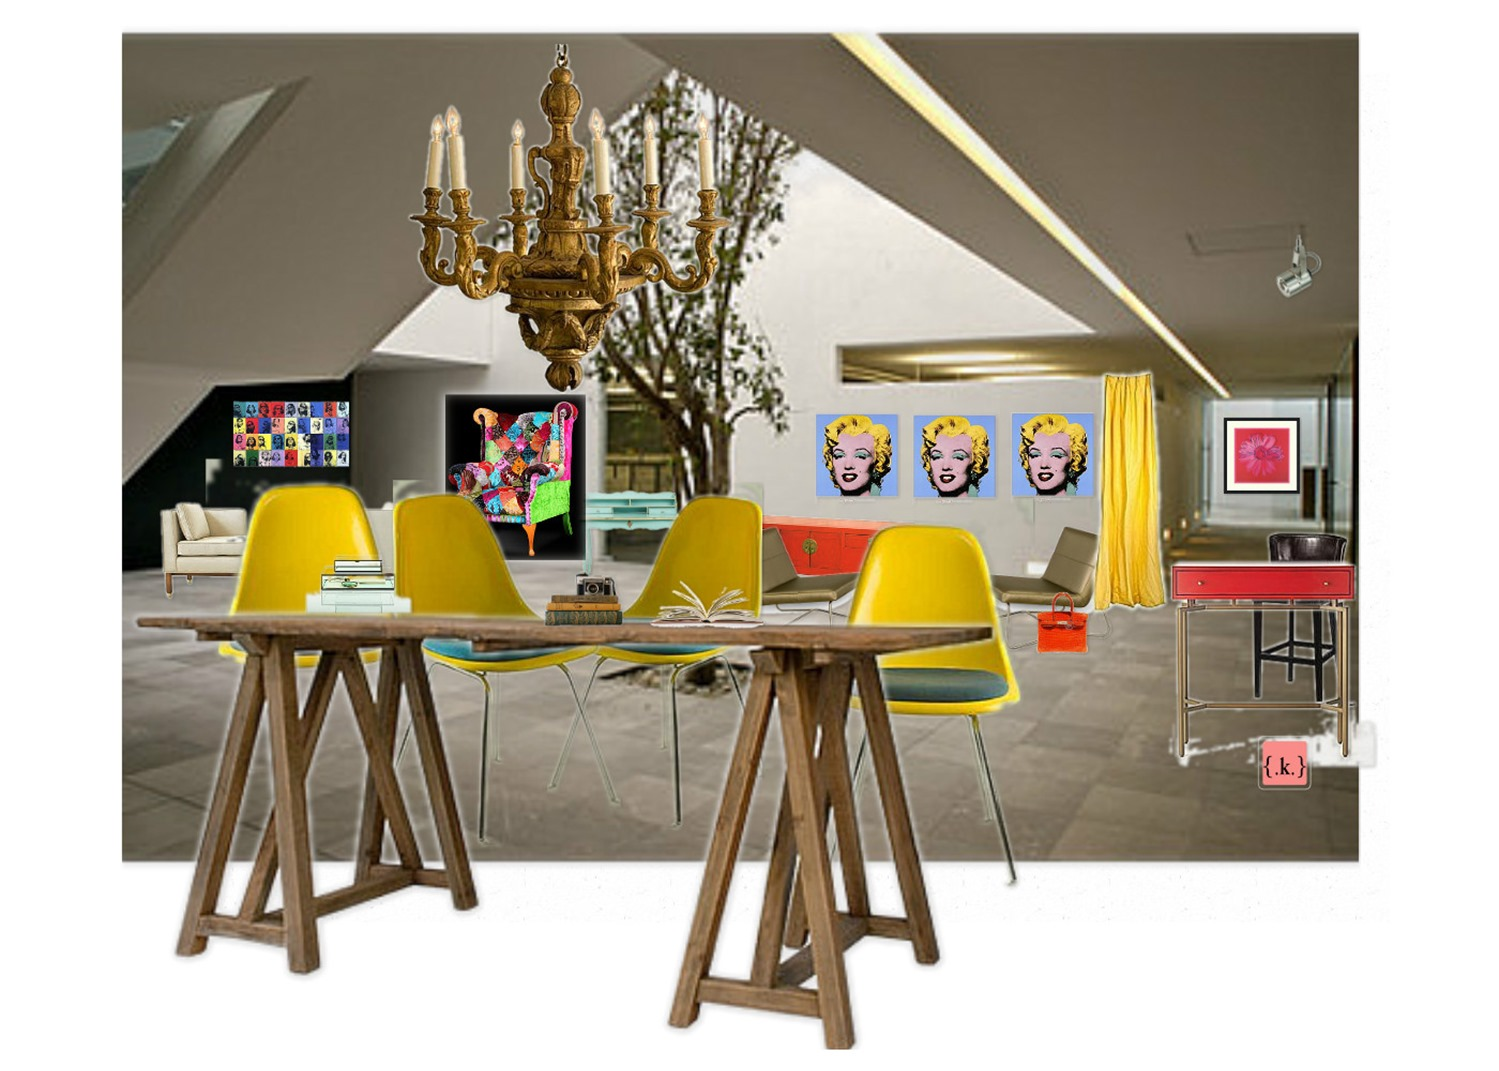 design board: Andy Warhol Inspired Studio Space -konstadina nastou- {.k.} blog, Κωνσταντίνα Νάστου